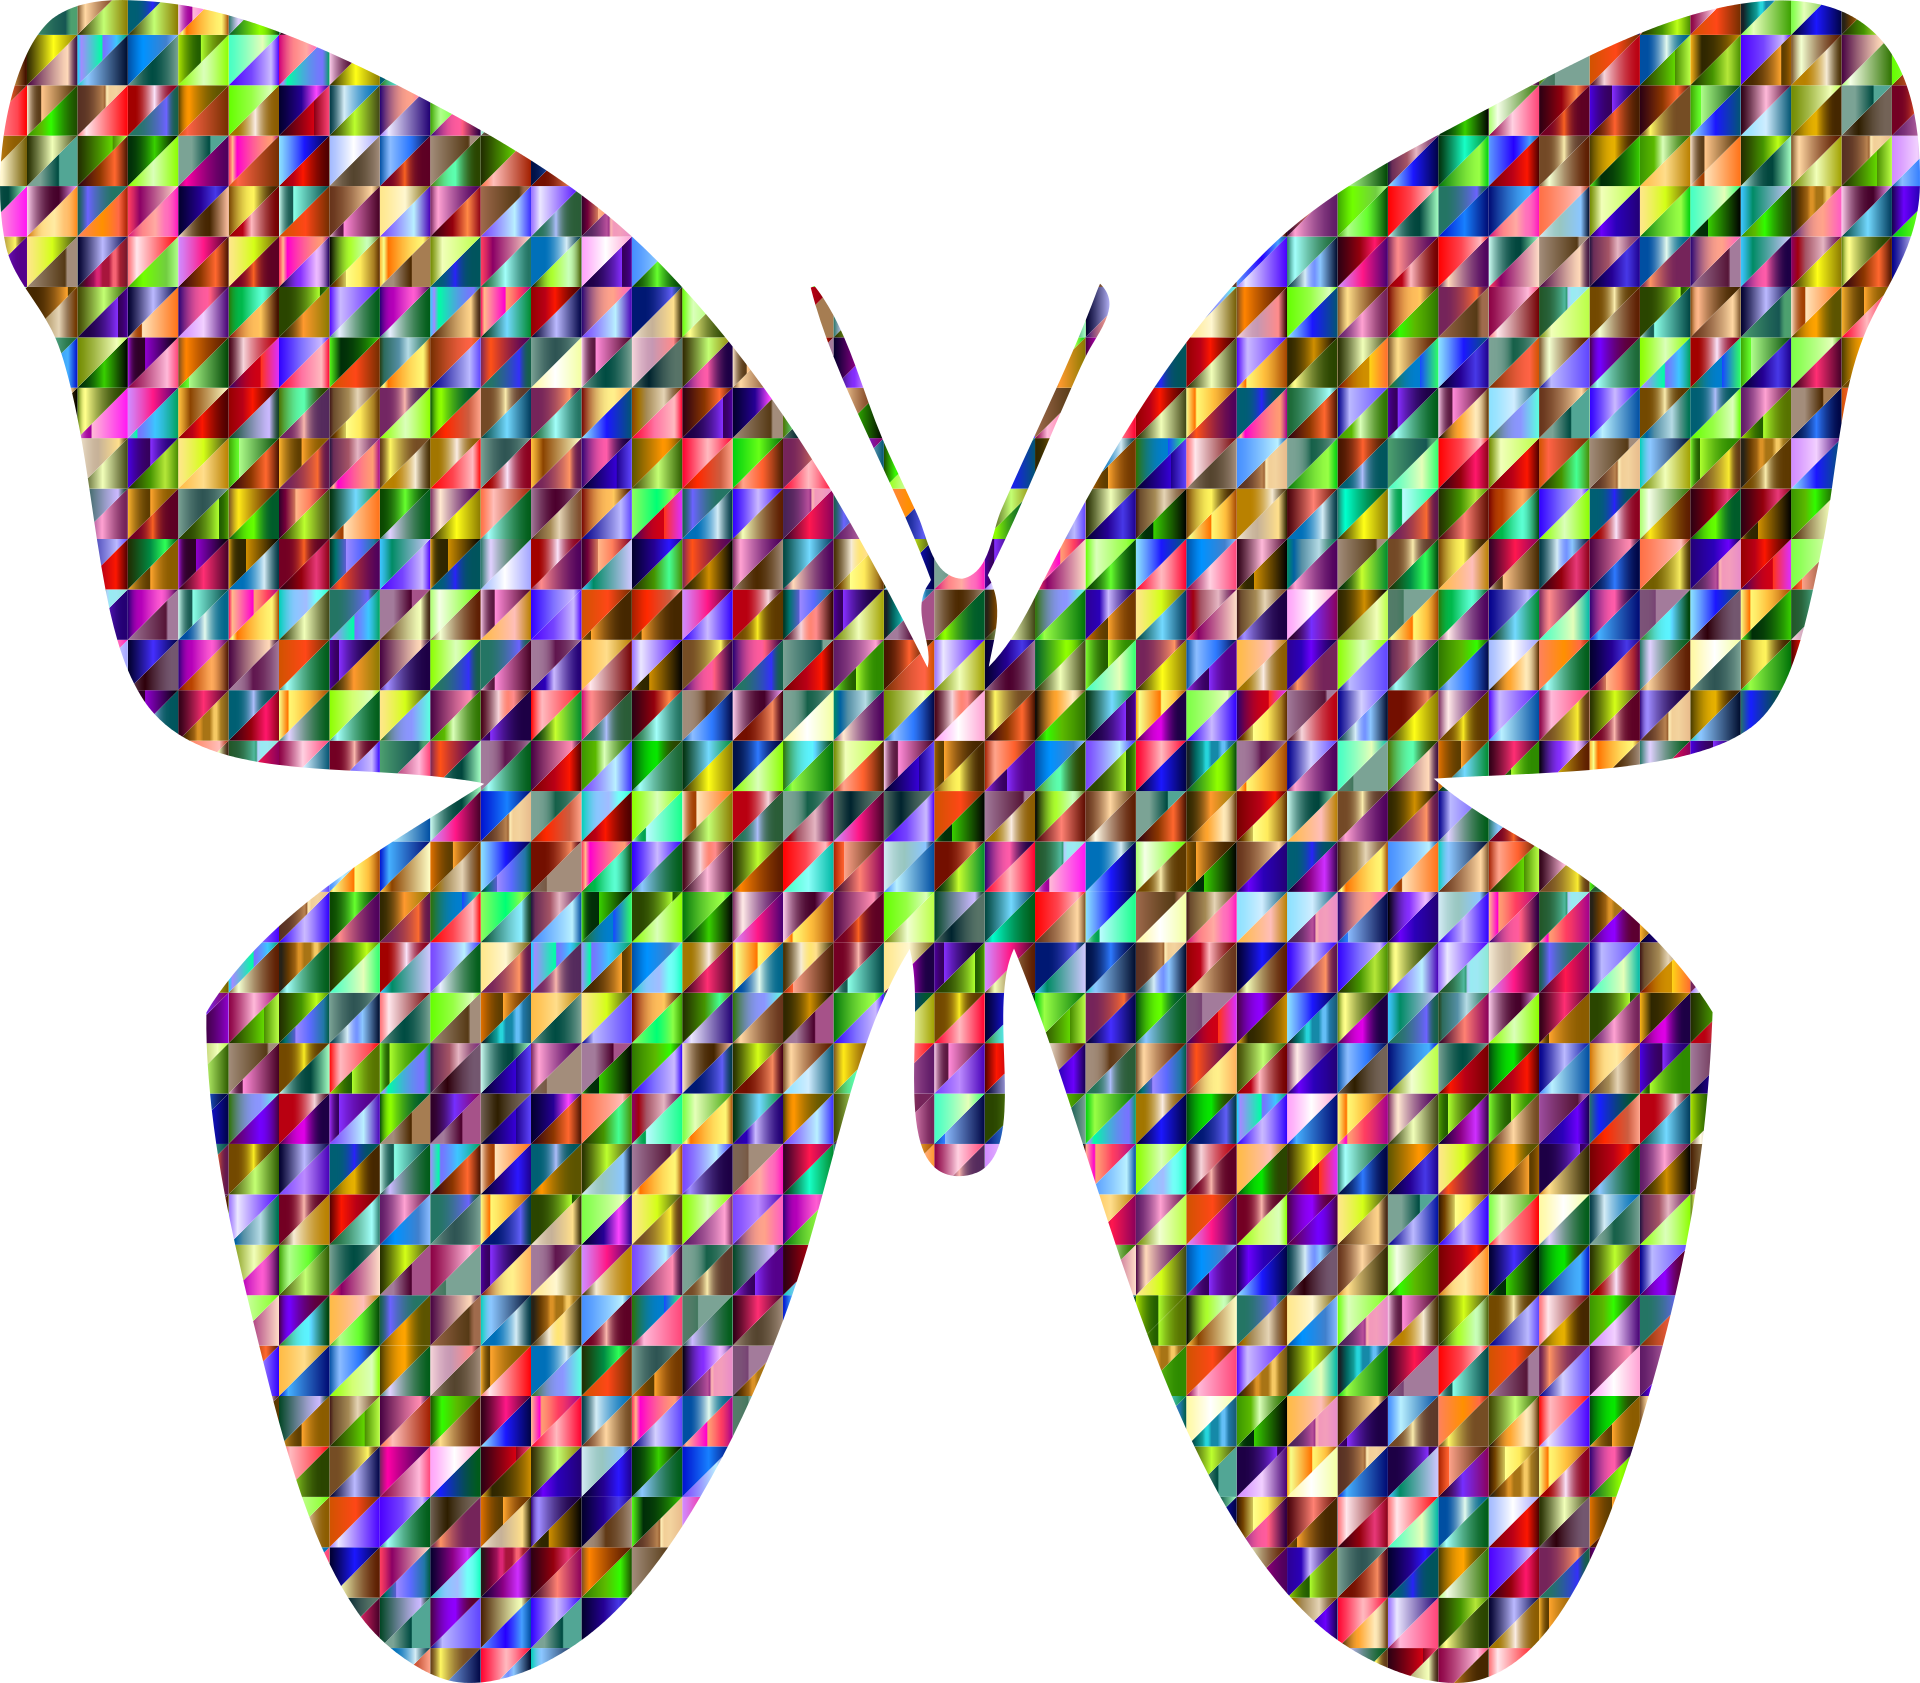 1920x1683 Colorful Geometric Drawing Of A Butterfly Free Image